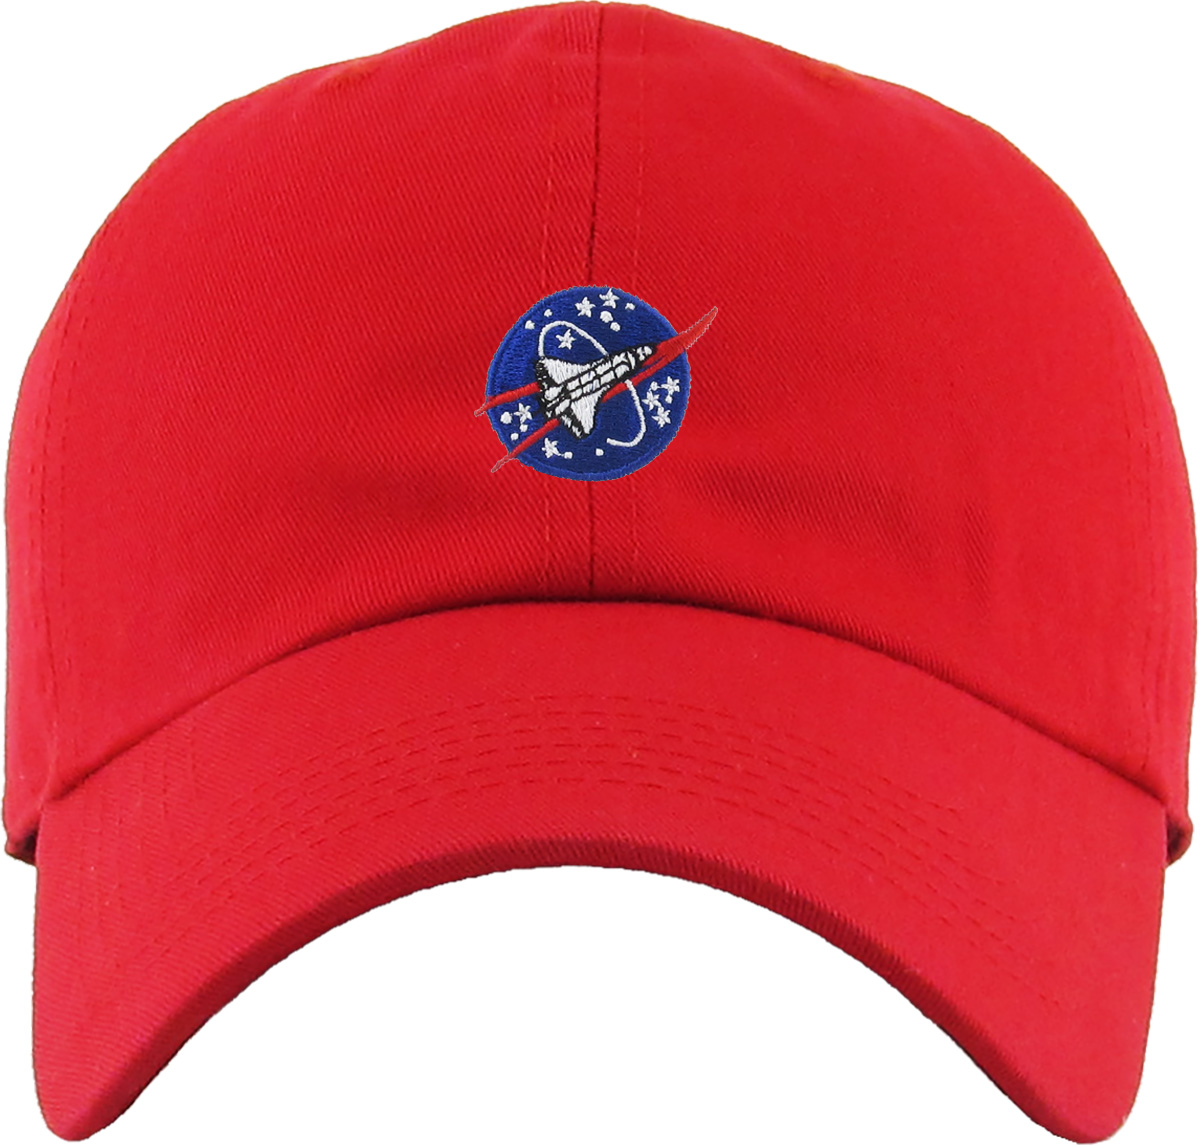 761d4e327e4 KBETHOS - Spaceship Burgundy Dad Hat Baseball Cap Polo Style Adjustable  NASA Galaxy Alien UFO Face ET E.T. Saucer Rocket Planets Earth Mars Moon -  Walmart. ...